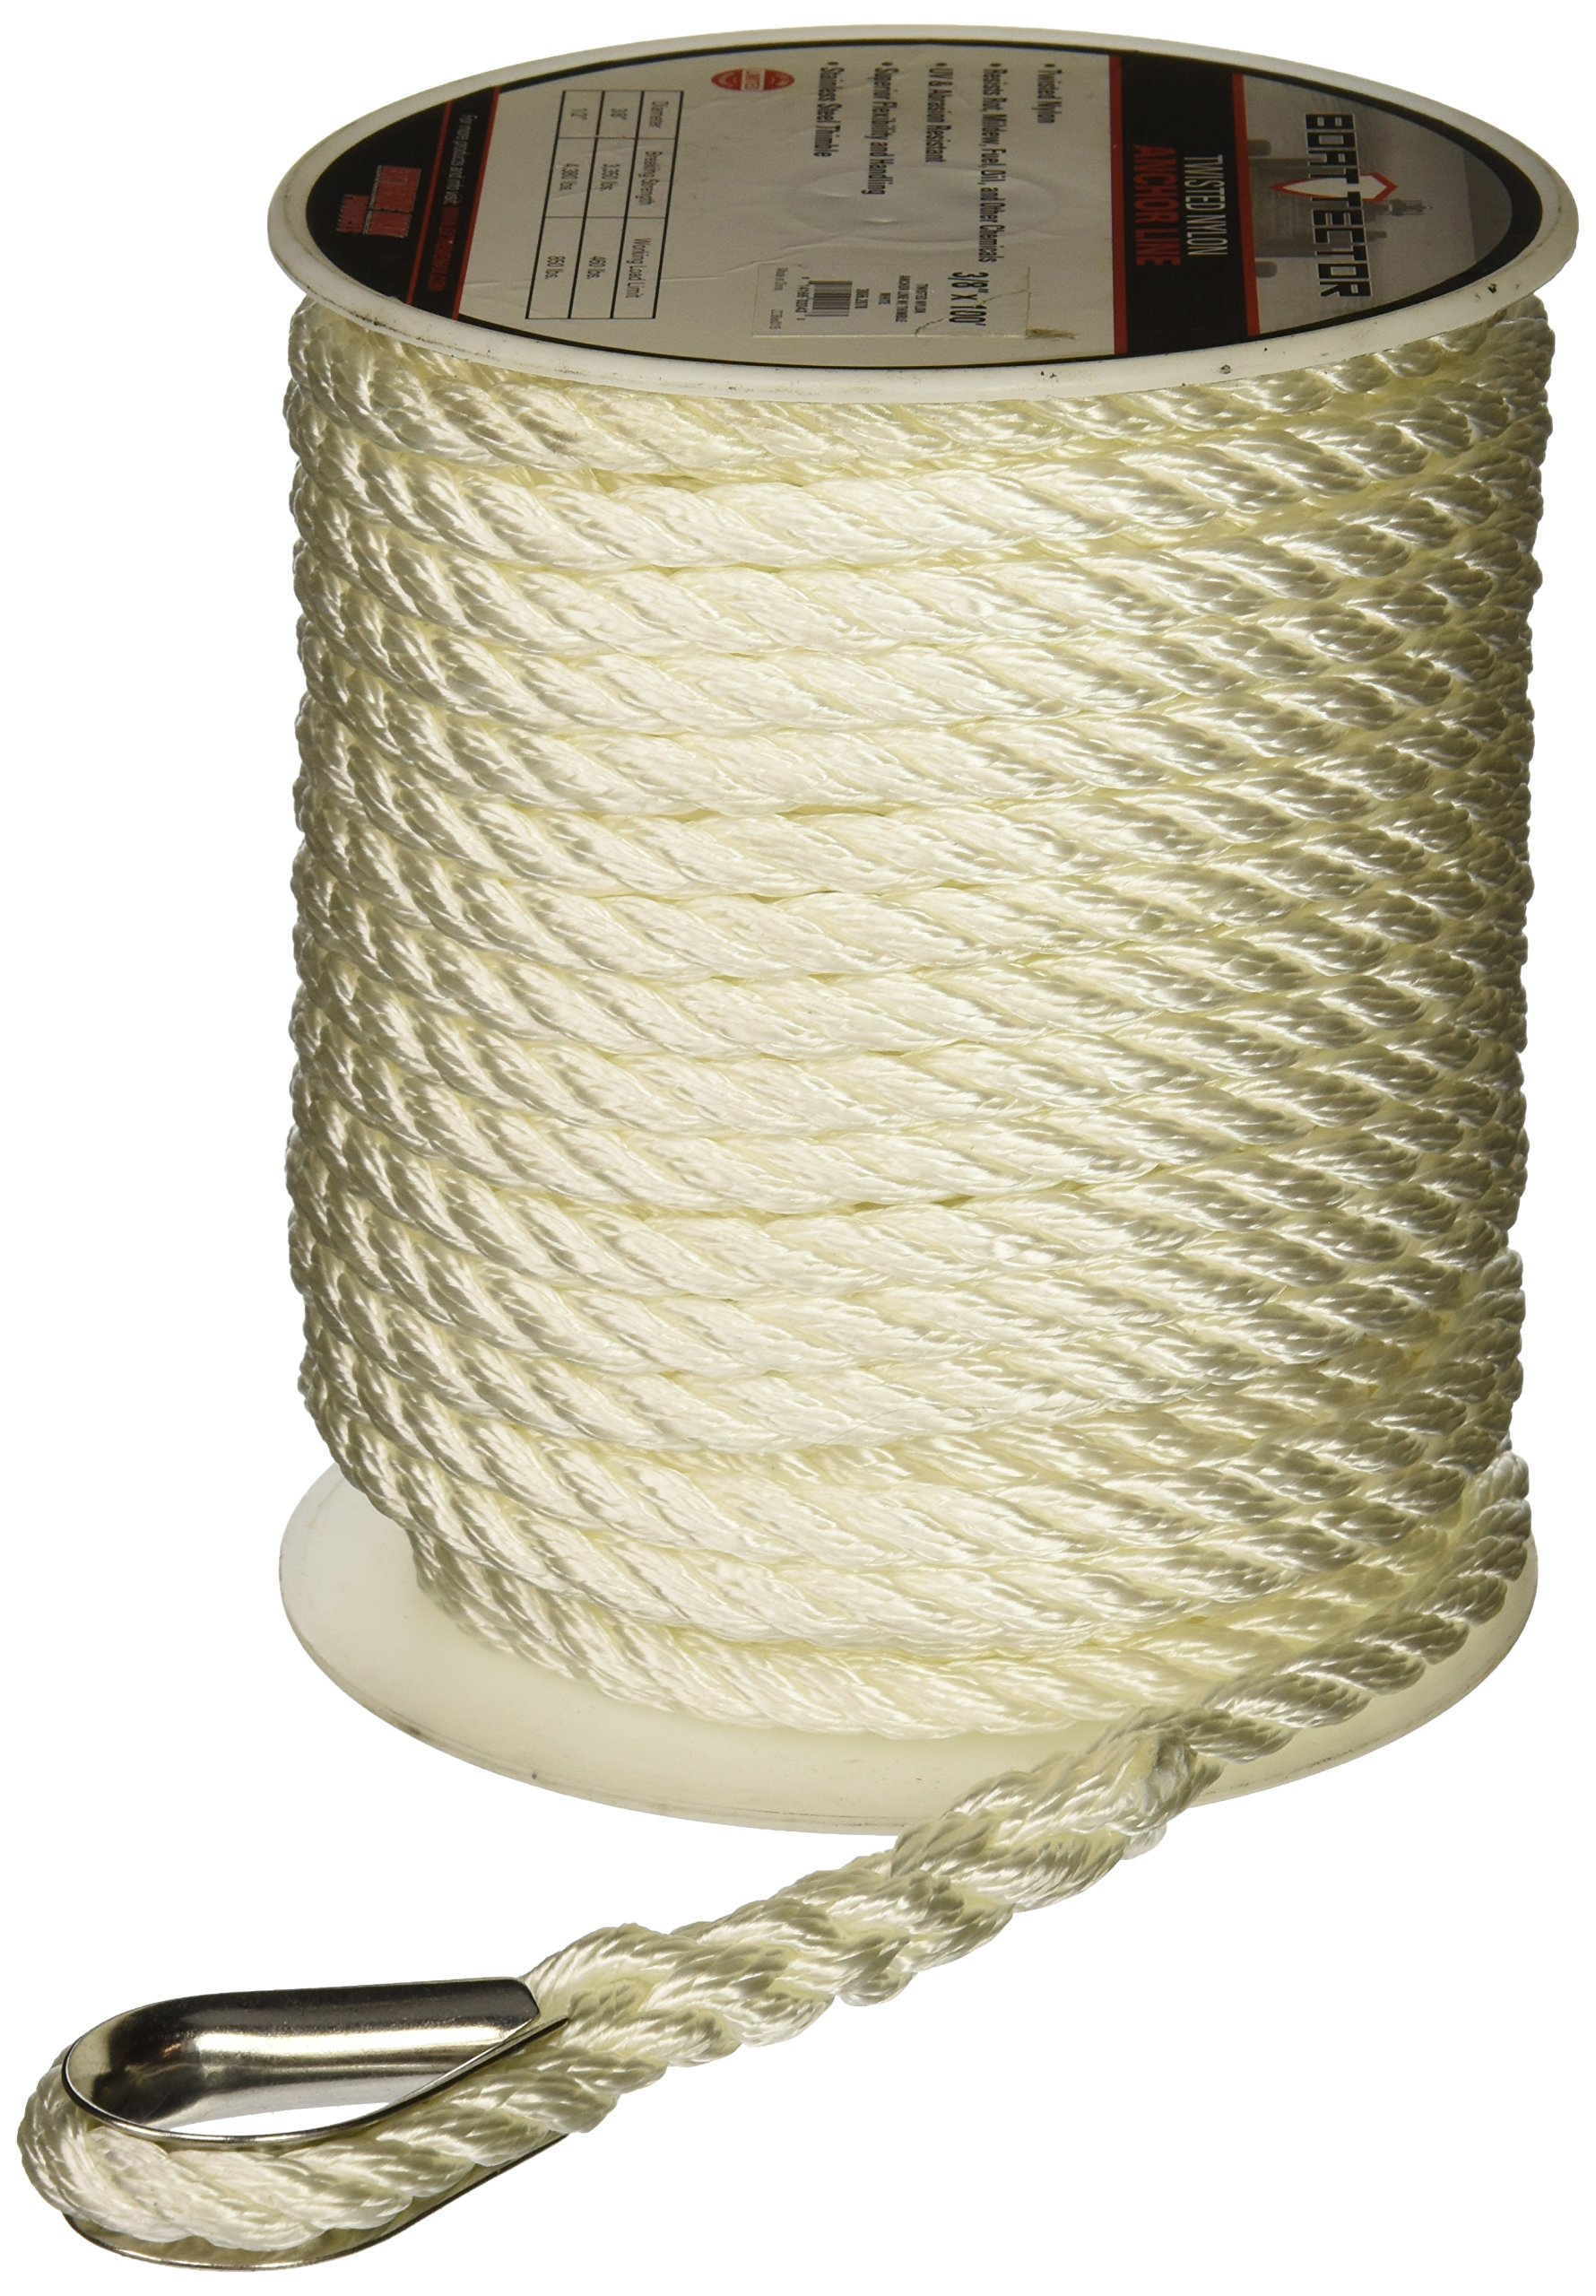 Extreme Max 3006.2297 BoatTector Premium Twisted Nylon Anchor Line with Thimble, 3/8-Inch x 200-Feet, White